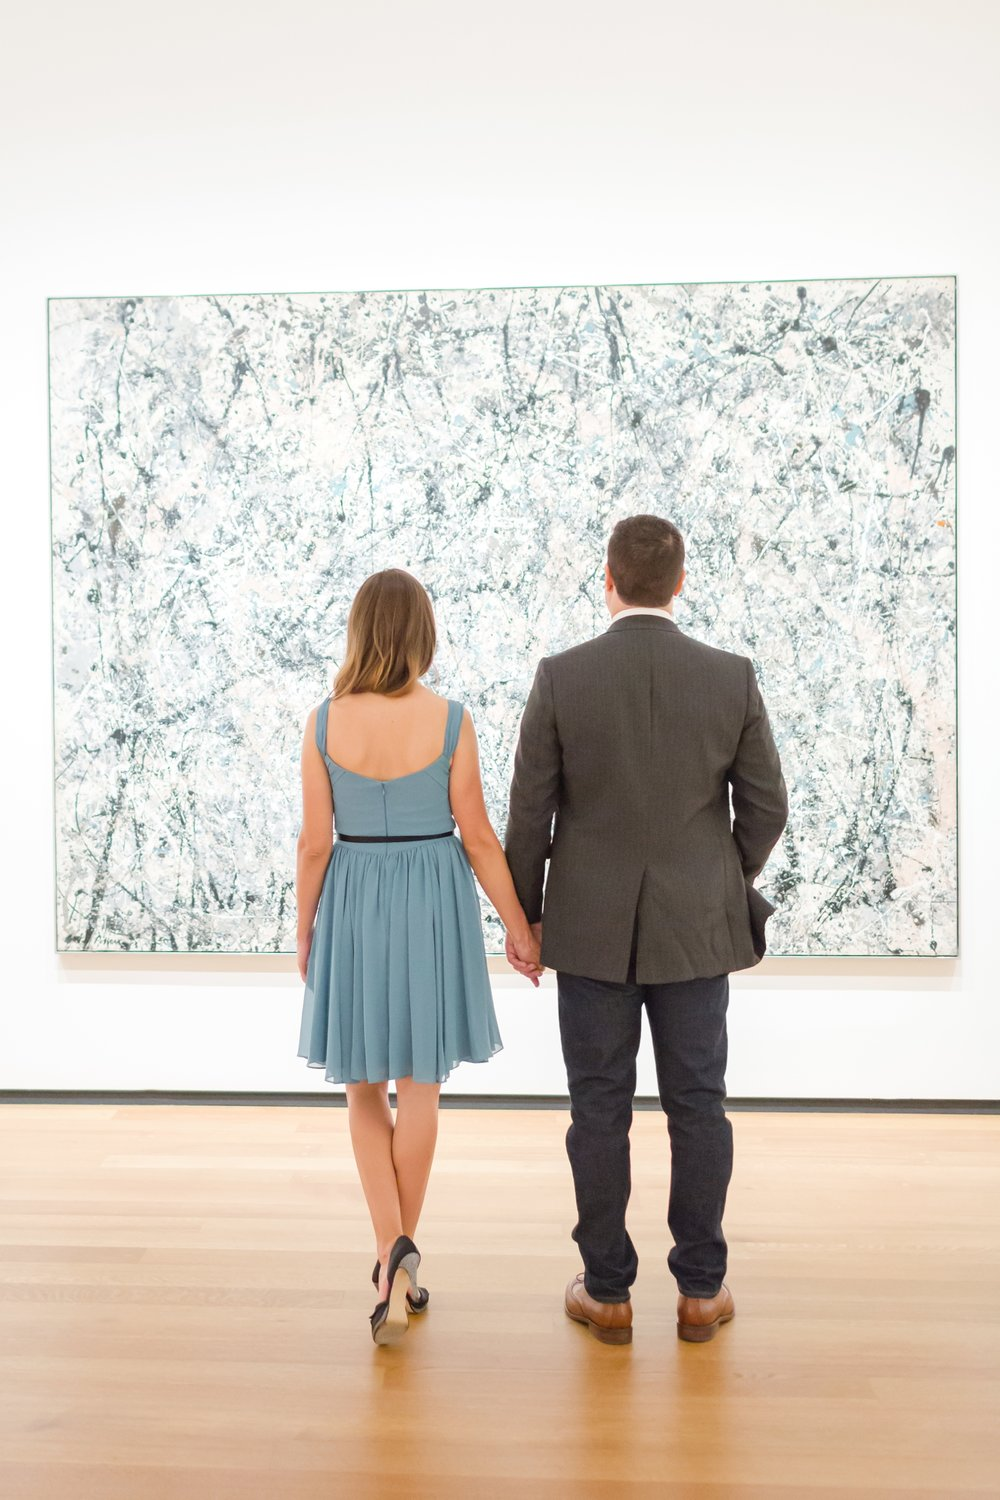 This was such a fun and different engagement session at the National Gallery of Art!